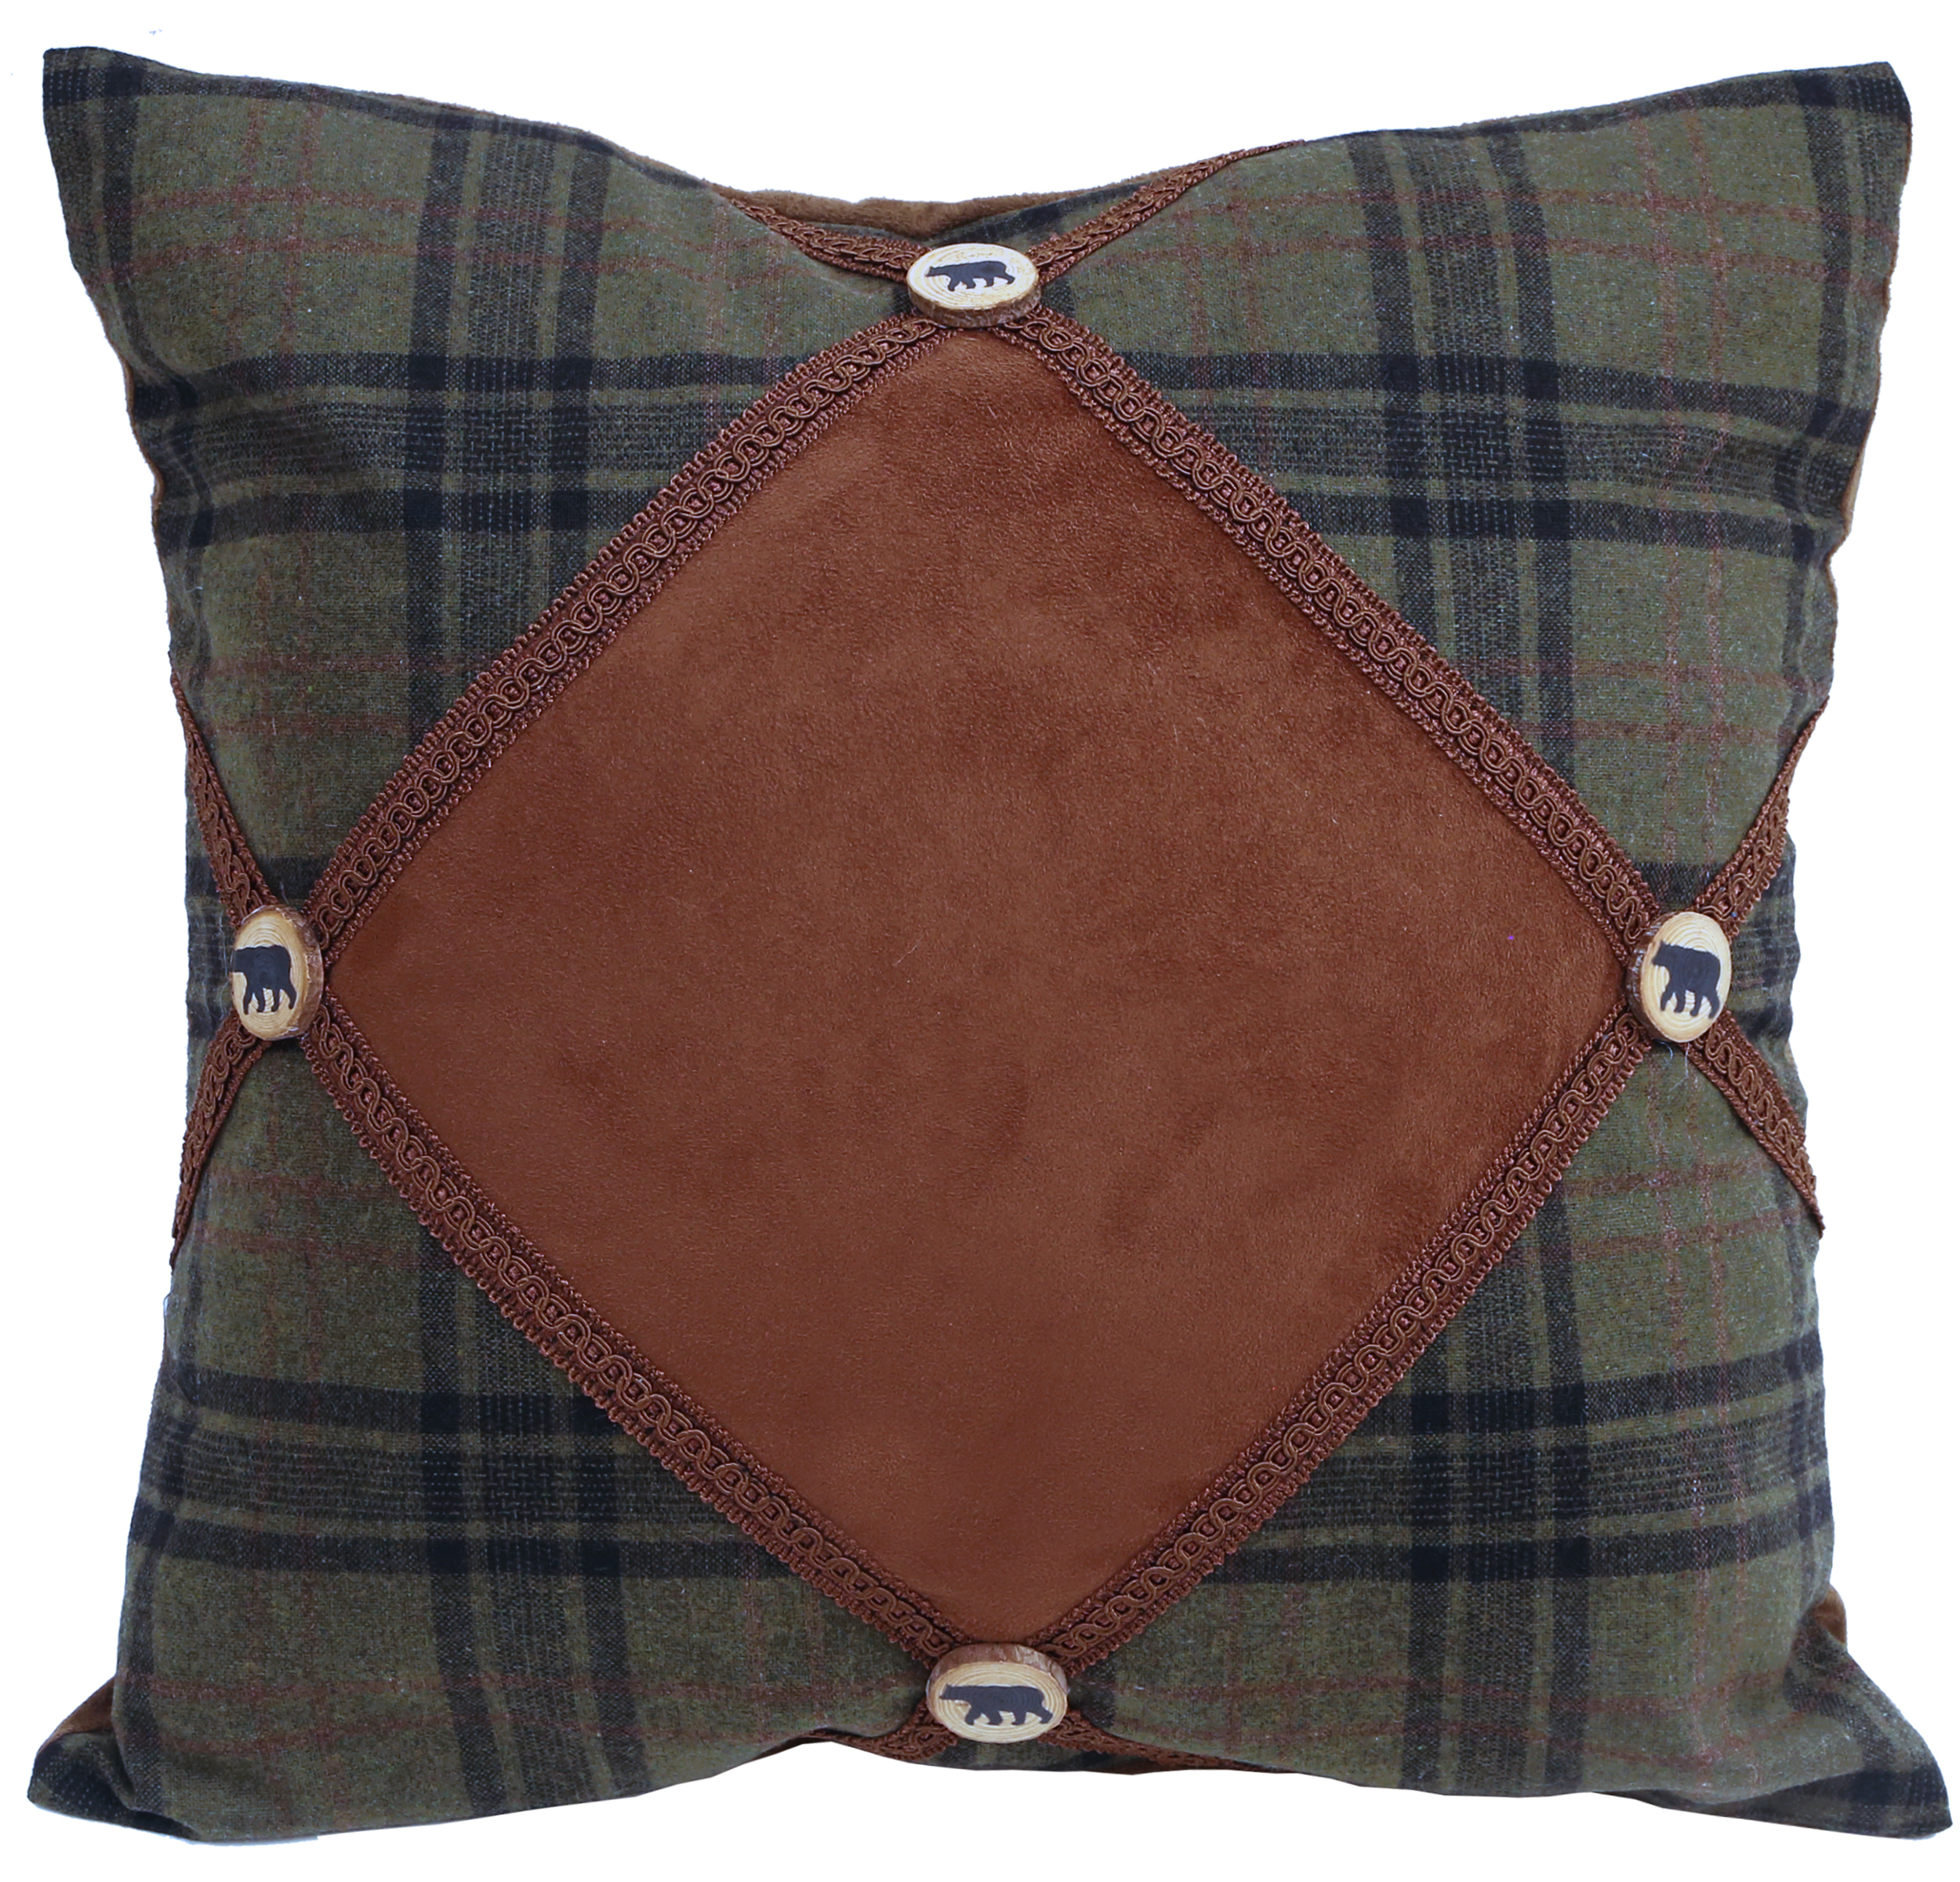 JB6640-Bear-Button-pillow